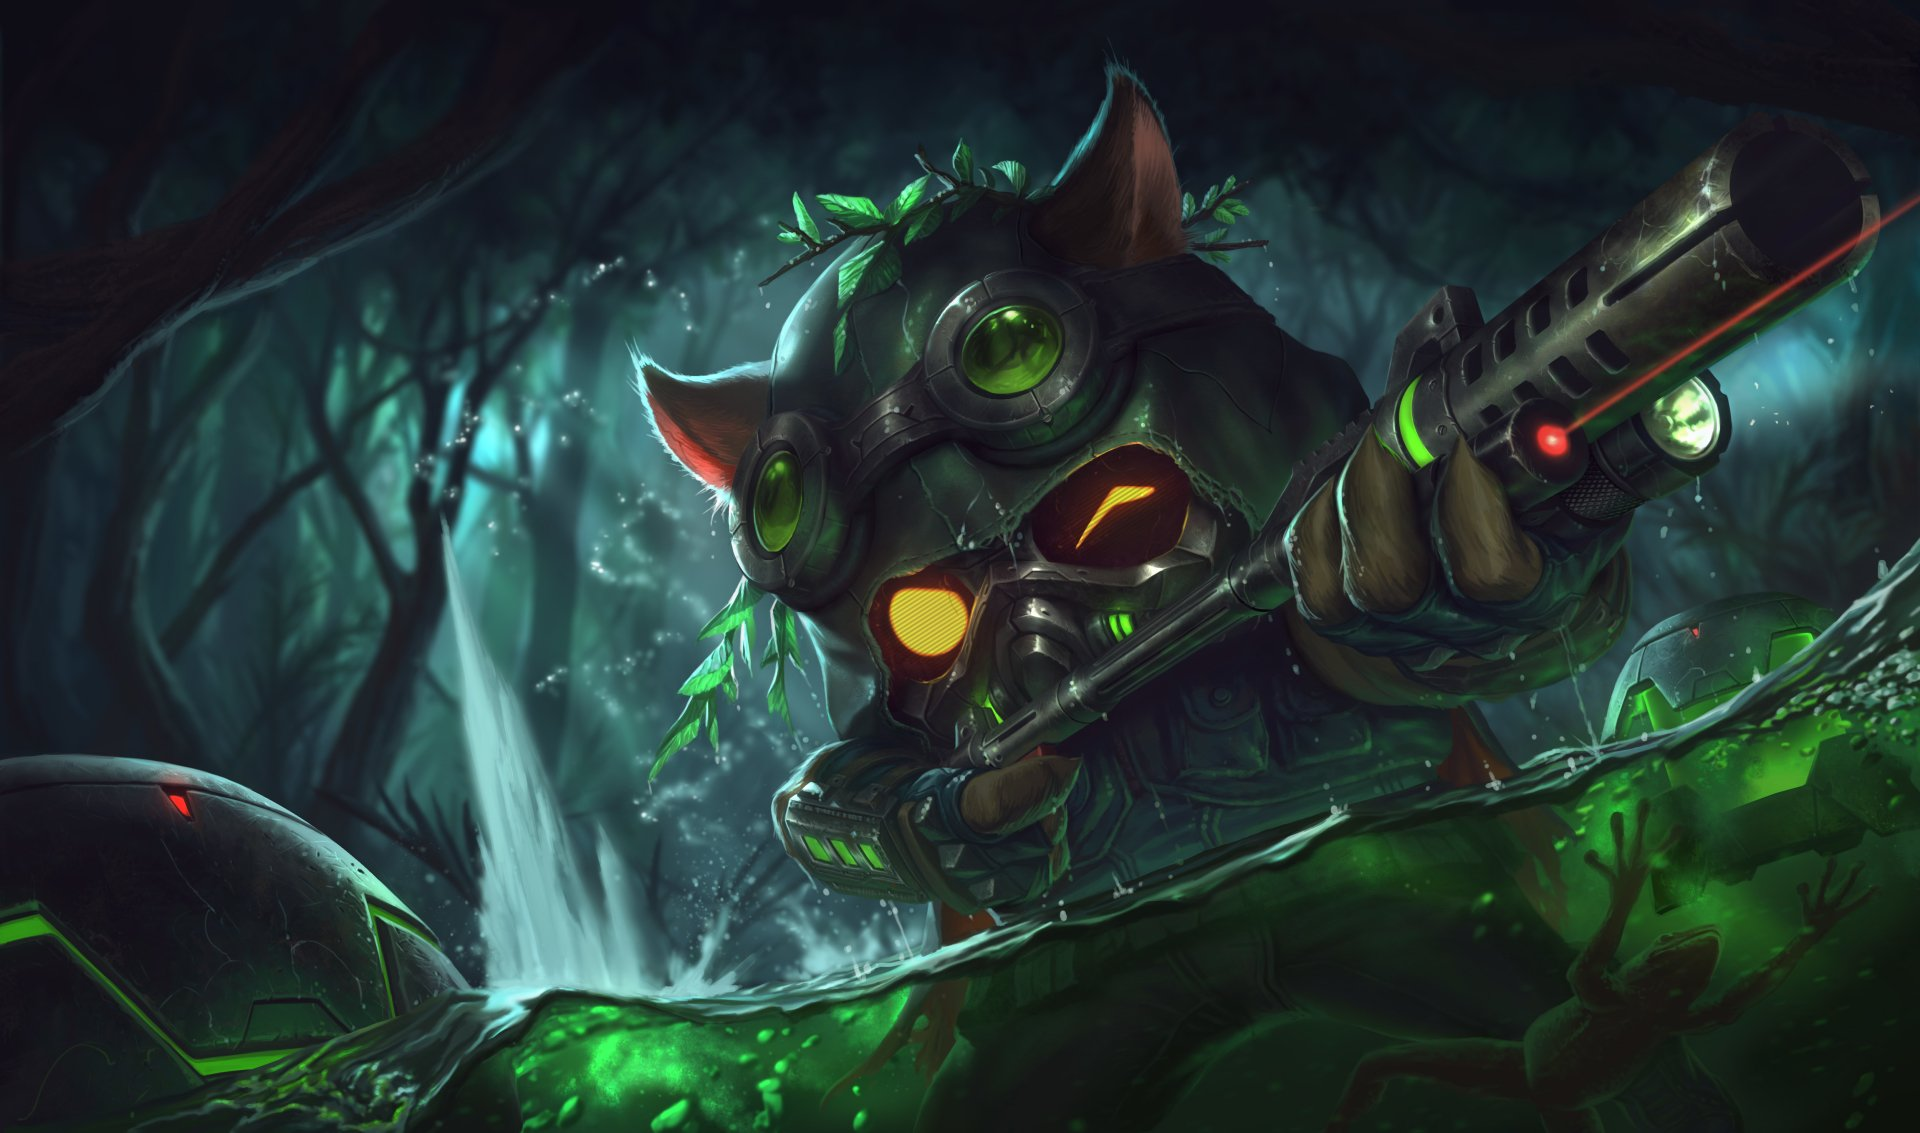 Video Game - League Of Legends  Teemo (League Of Legends) Video Game Wallpaper